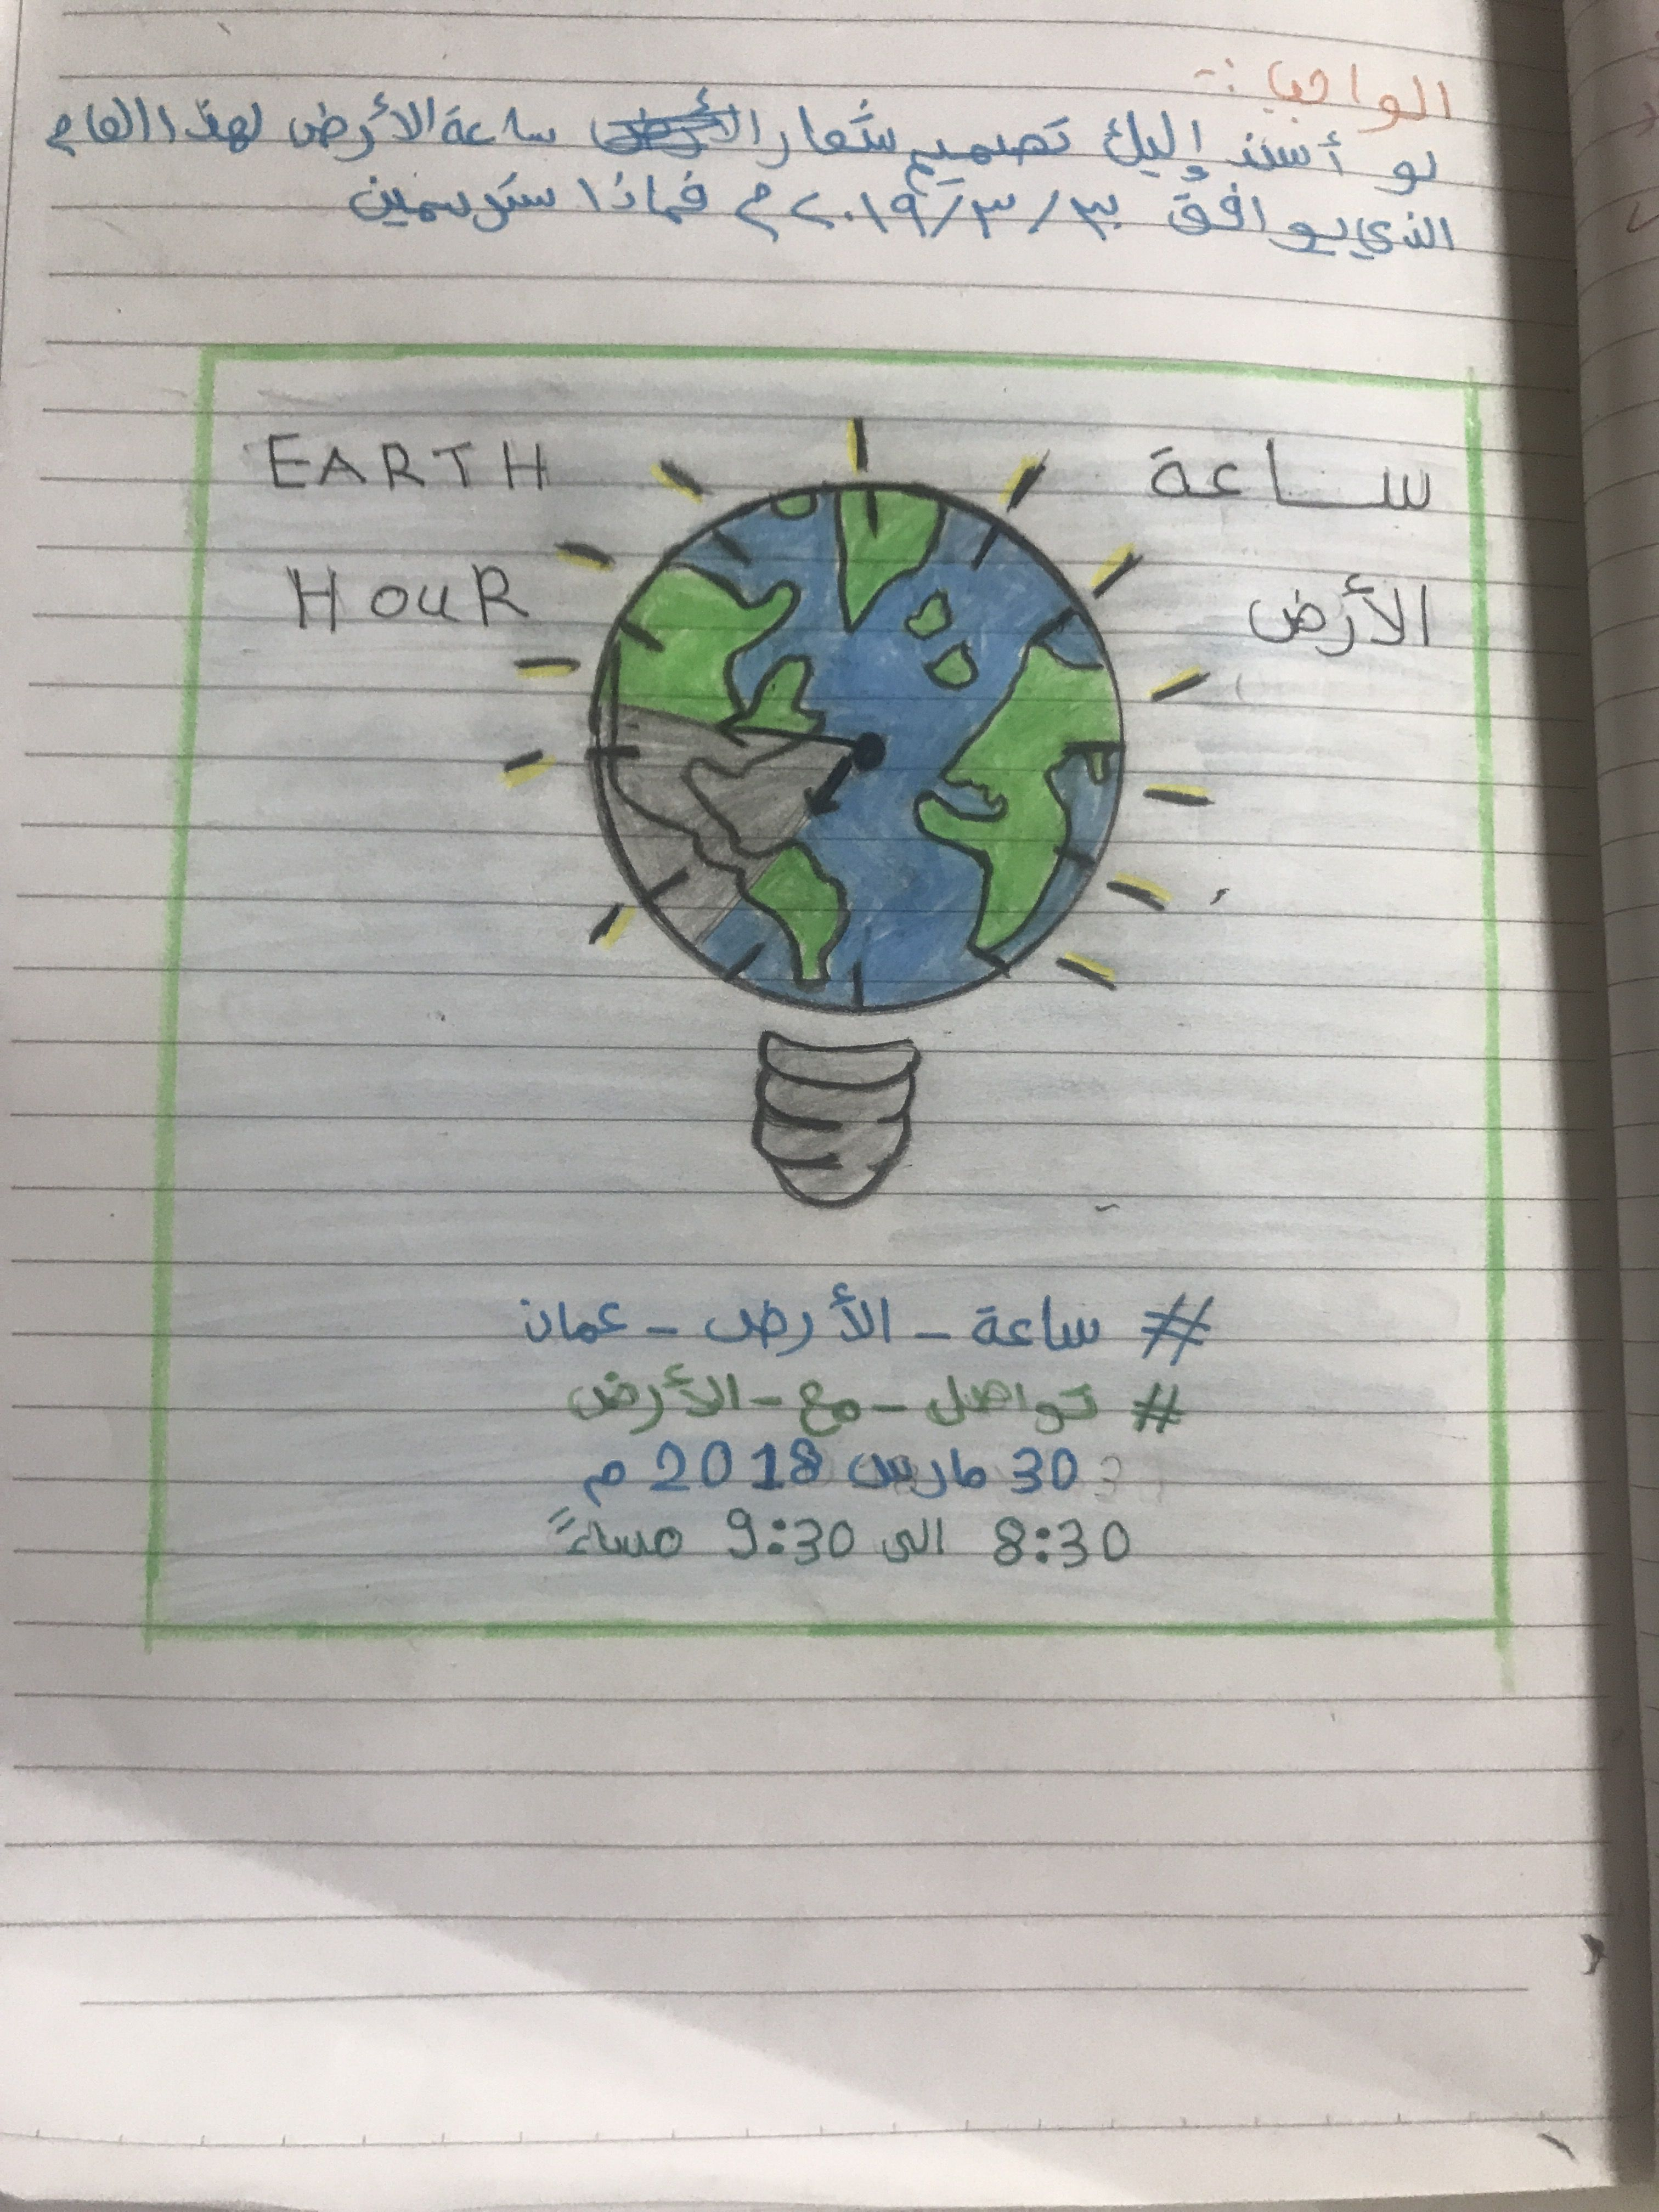 Pin By Saffeer On ساعة الأرض Earth Hour Activities Earth